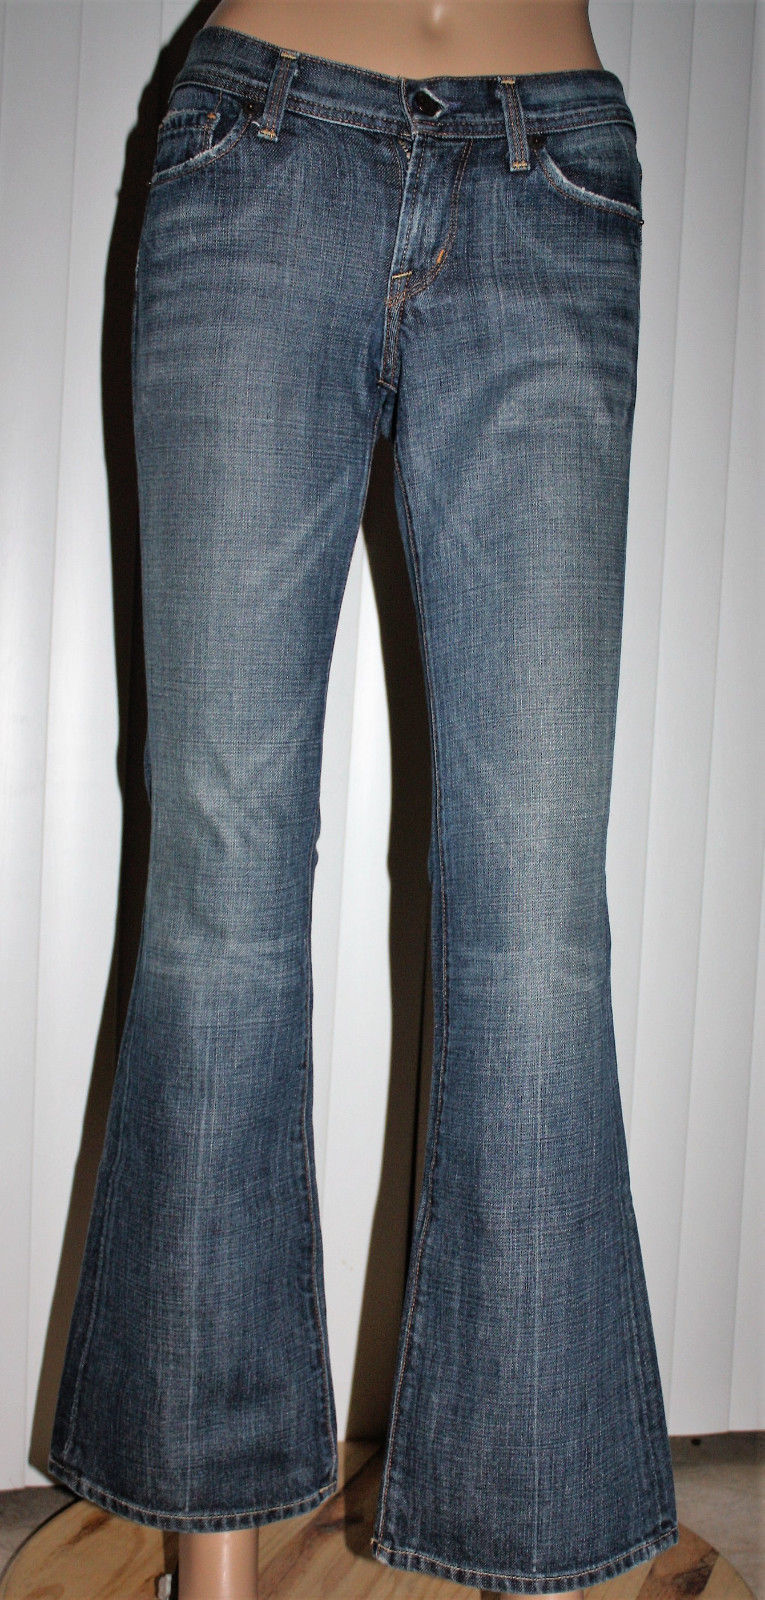 Citizens Of Humanity INGRID #002 Womens Low-Waist Flair Denim Jeans (25 Regular) -Pre-owned 12139